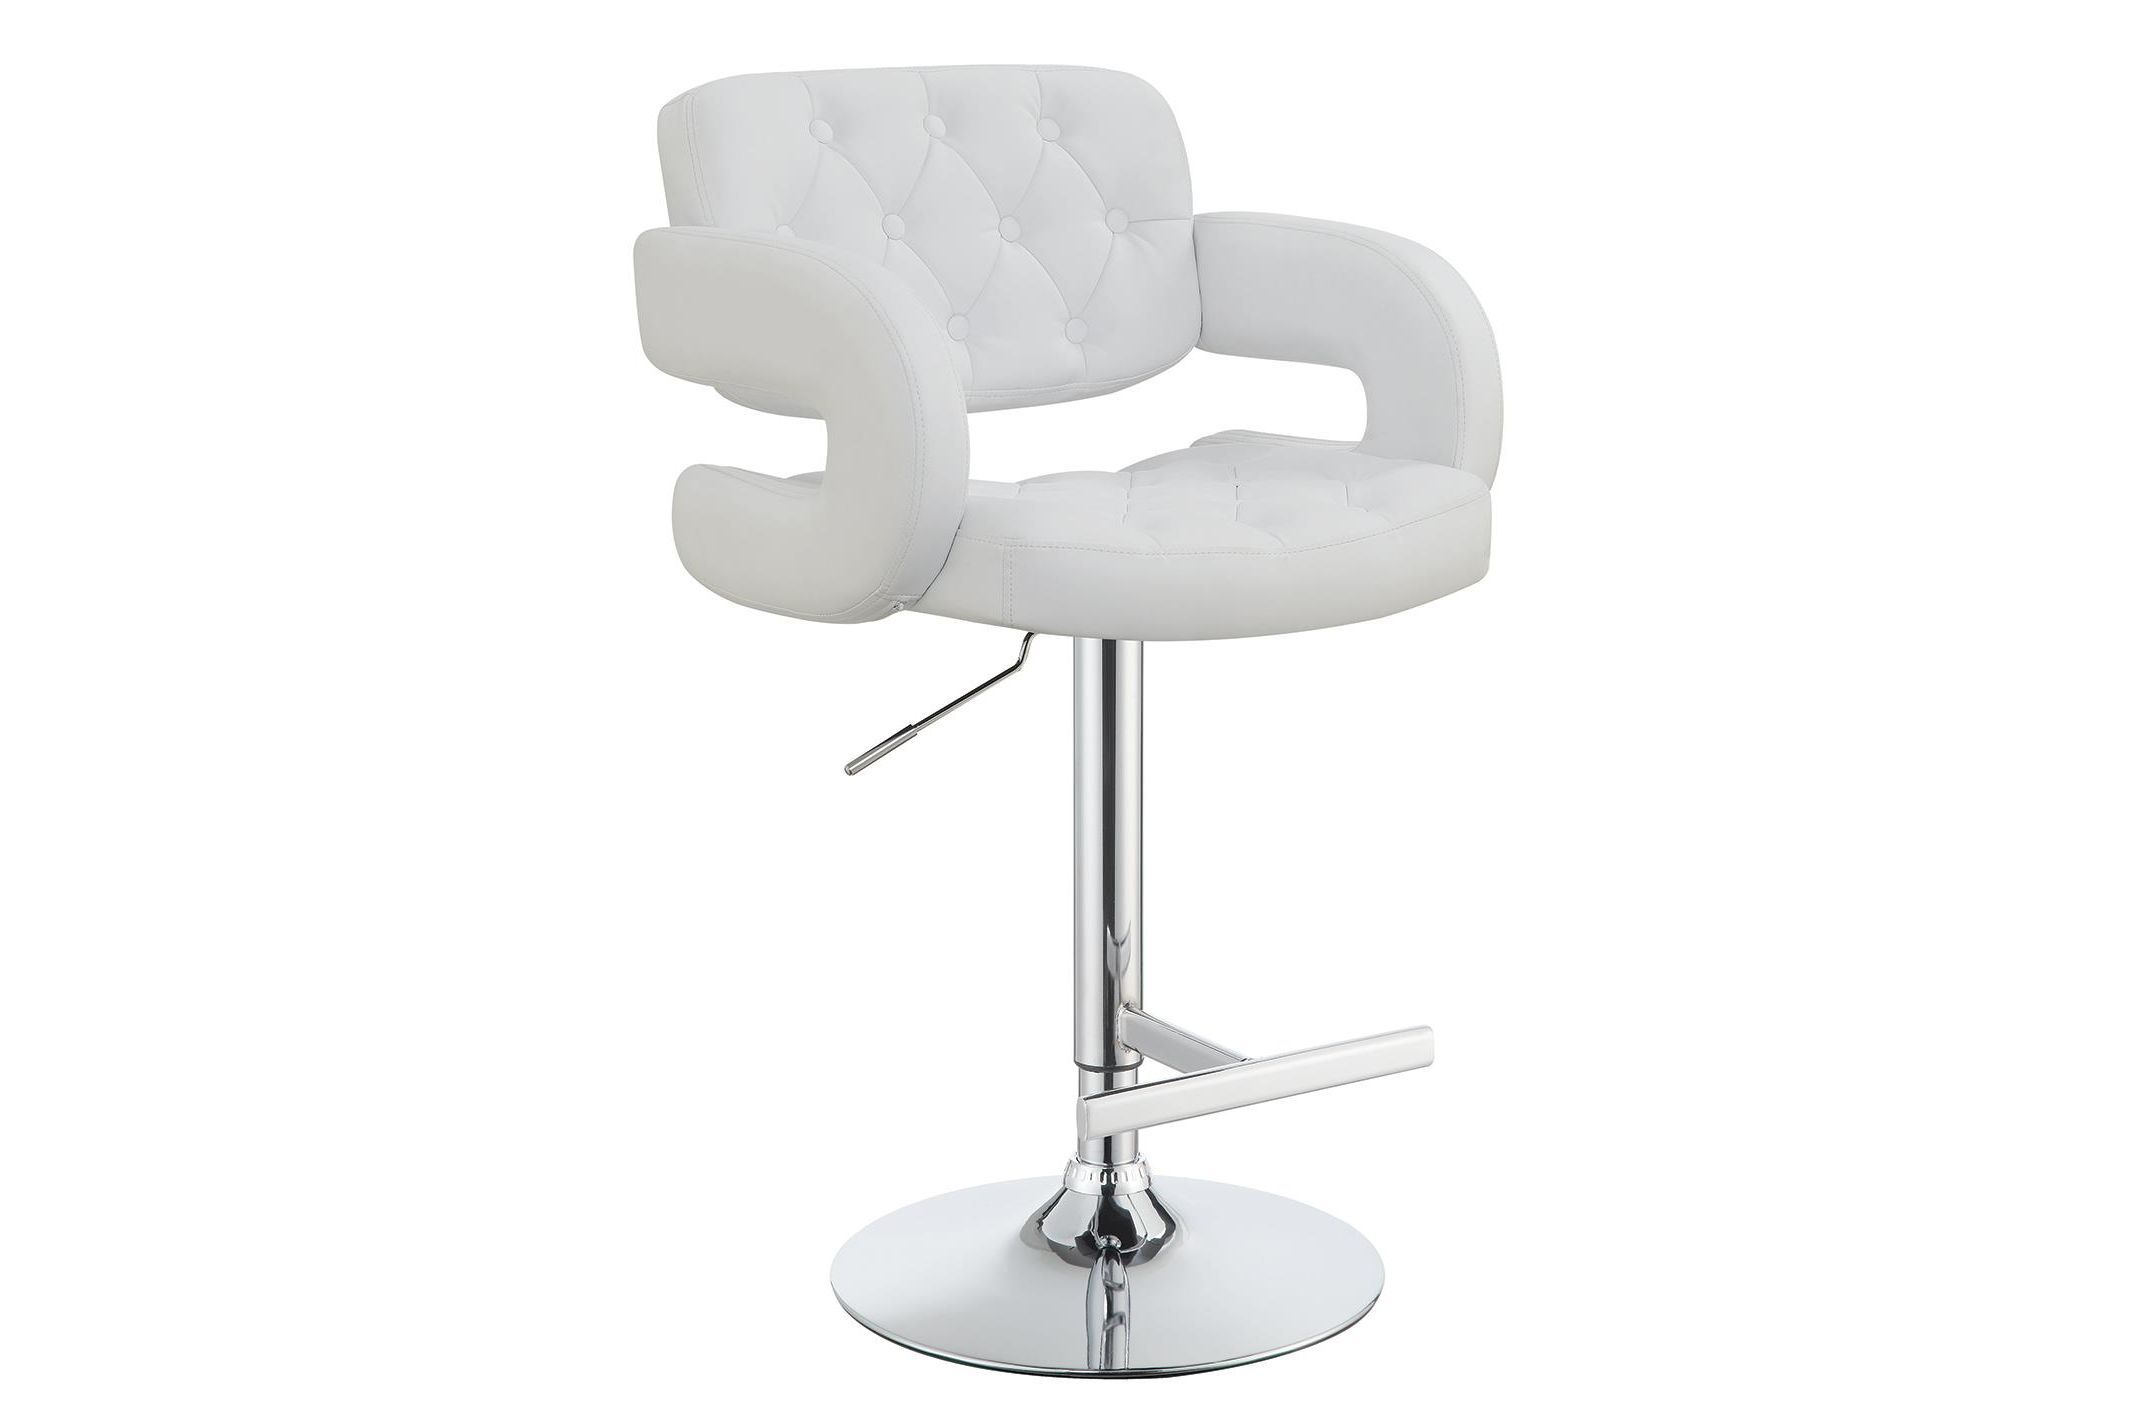 29 Adjustable Height Bar Stool Chrome And White by Coaster